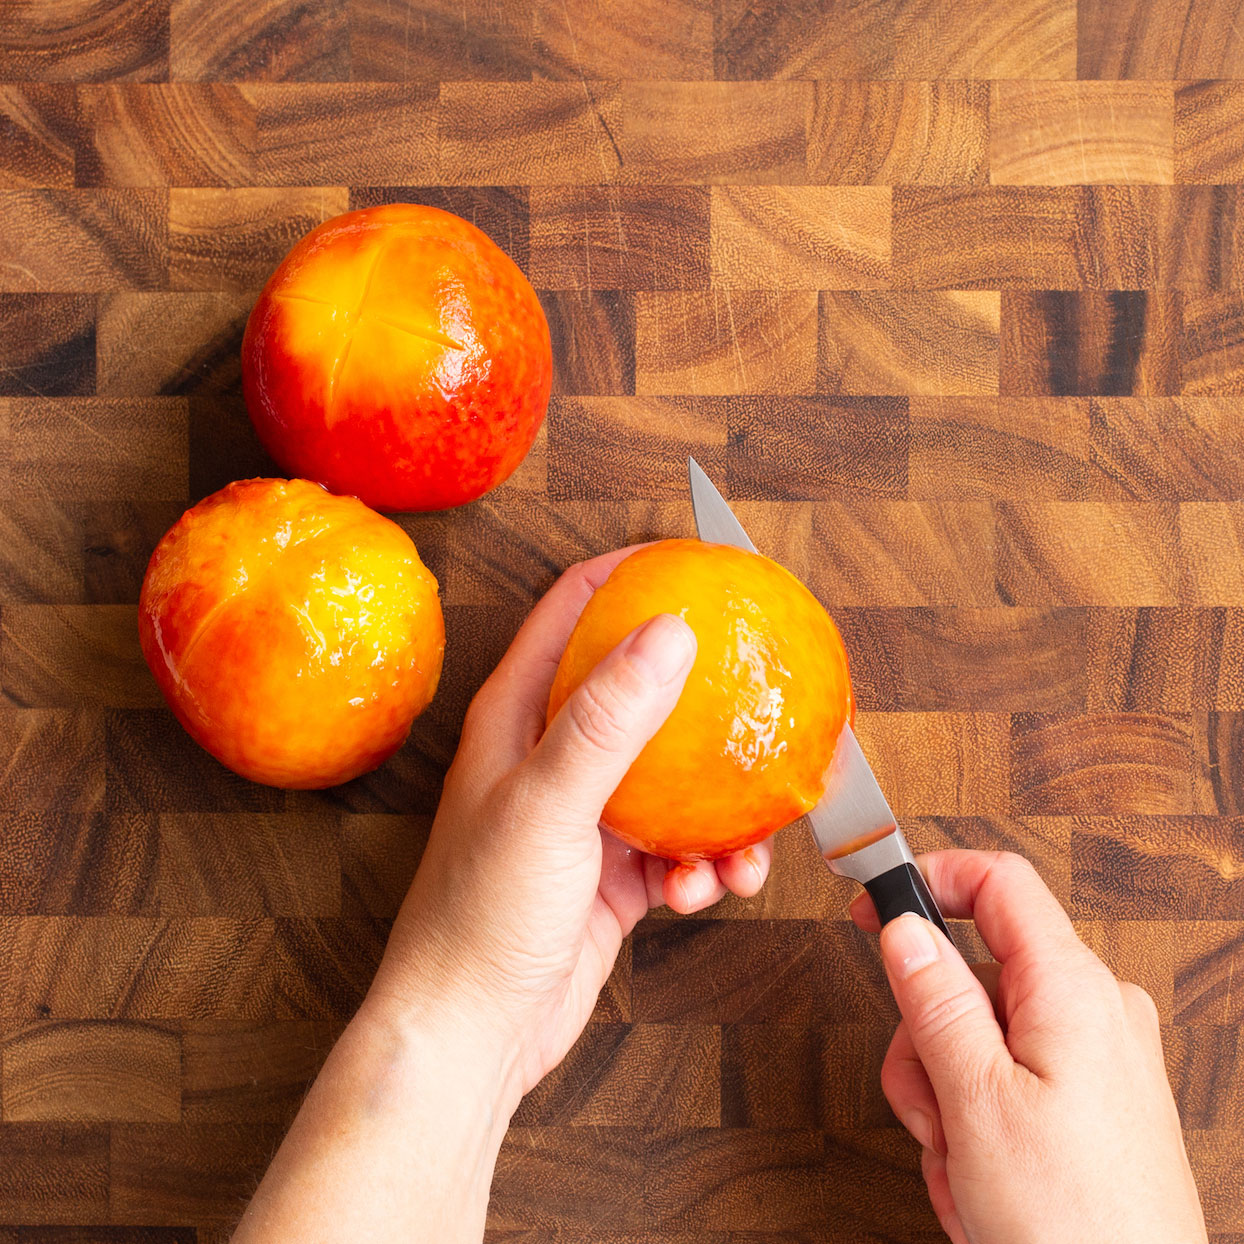 halving peeled peaches with paring knife